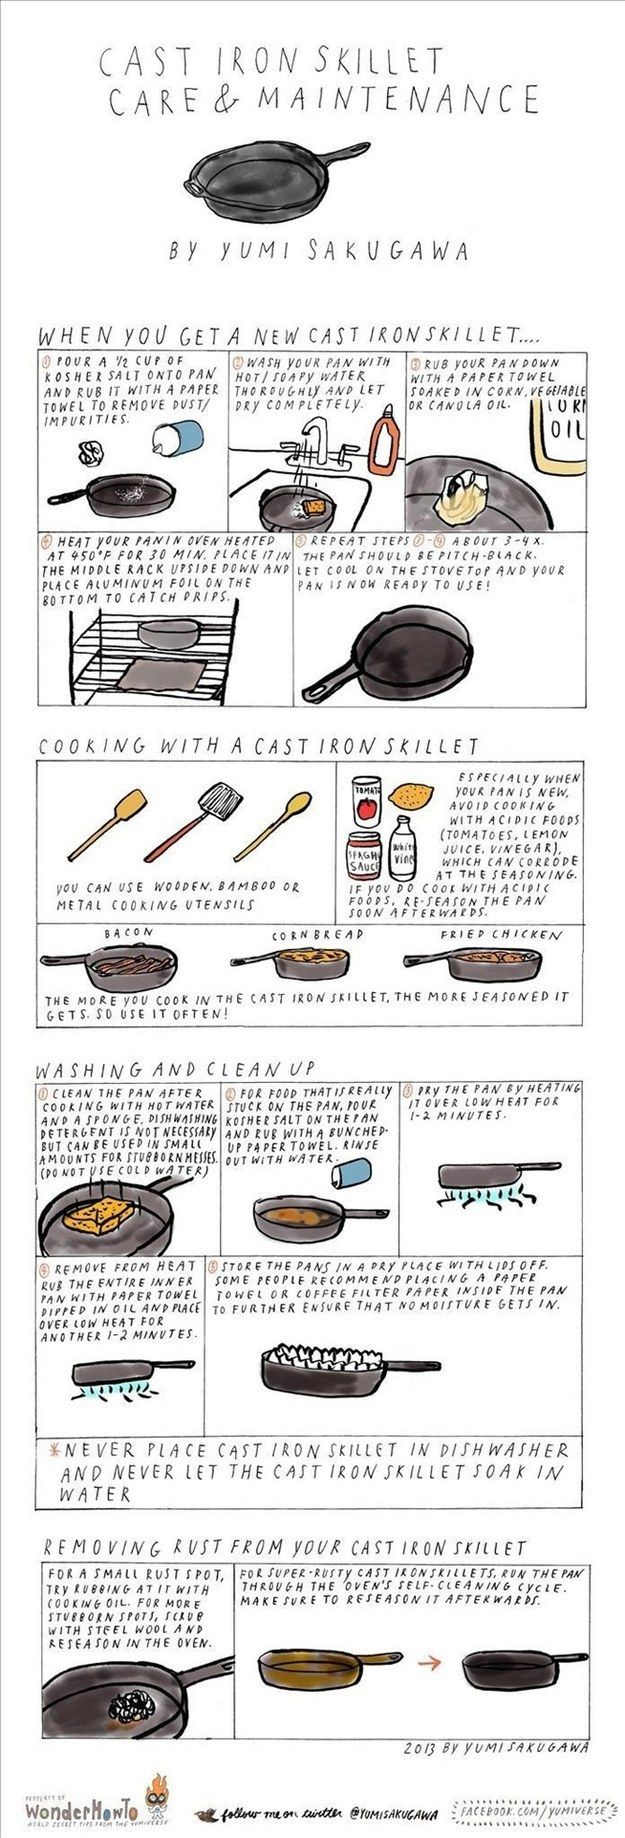 Para cocinar con y mantener una sartén de hierro fundido. | 27 Diagrams That Make Cooking So Much Easier